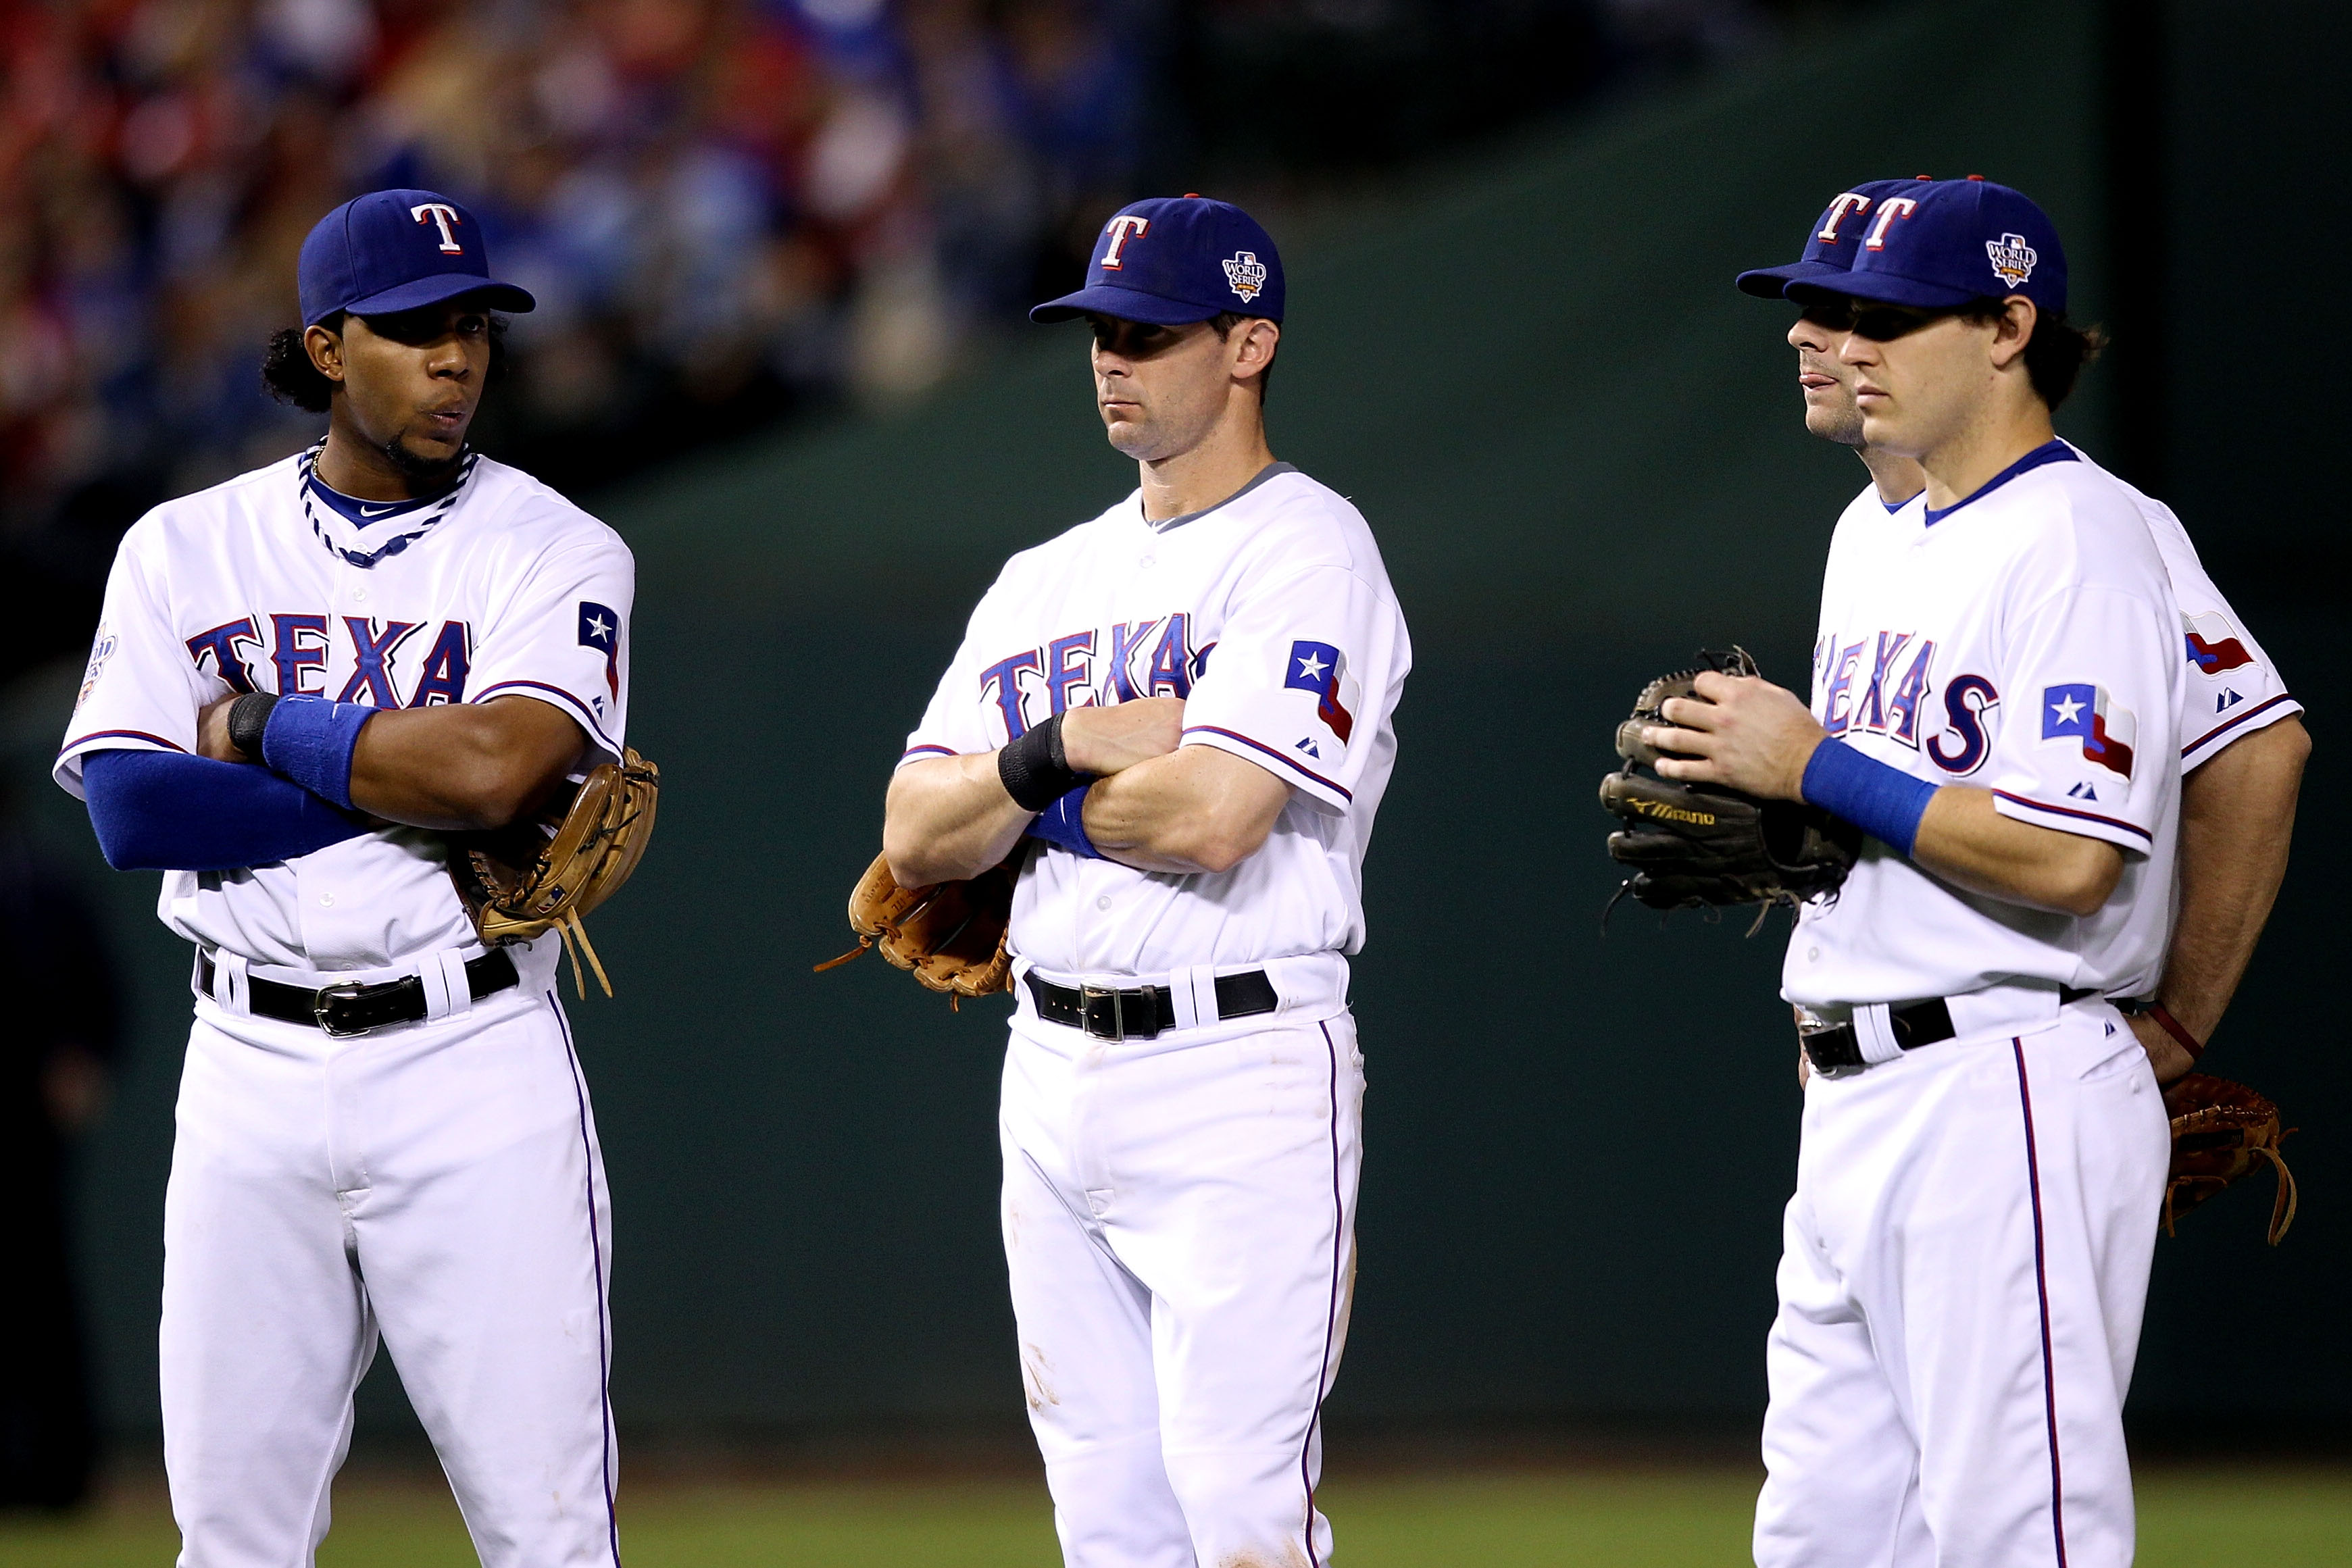 ARLINGTON, TX - OCTOBER 31:  (L-R) Elvis Andrus #1, Michael Young #10, Ian Kinsler #5 and Mitch Moreland #18 of the Texas Rangers wait during a pitching change against the San Francisco Giants in Game Four of the 2010 MLB World Series at Rangers Ballpark